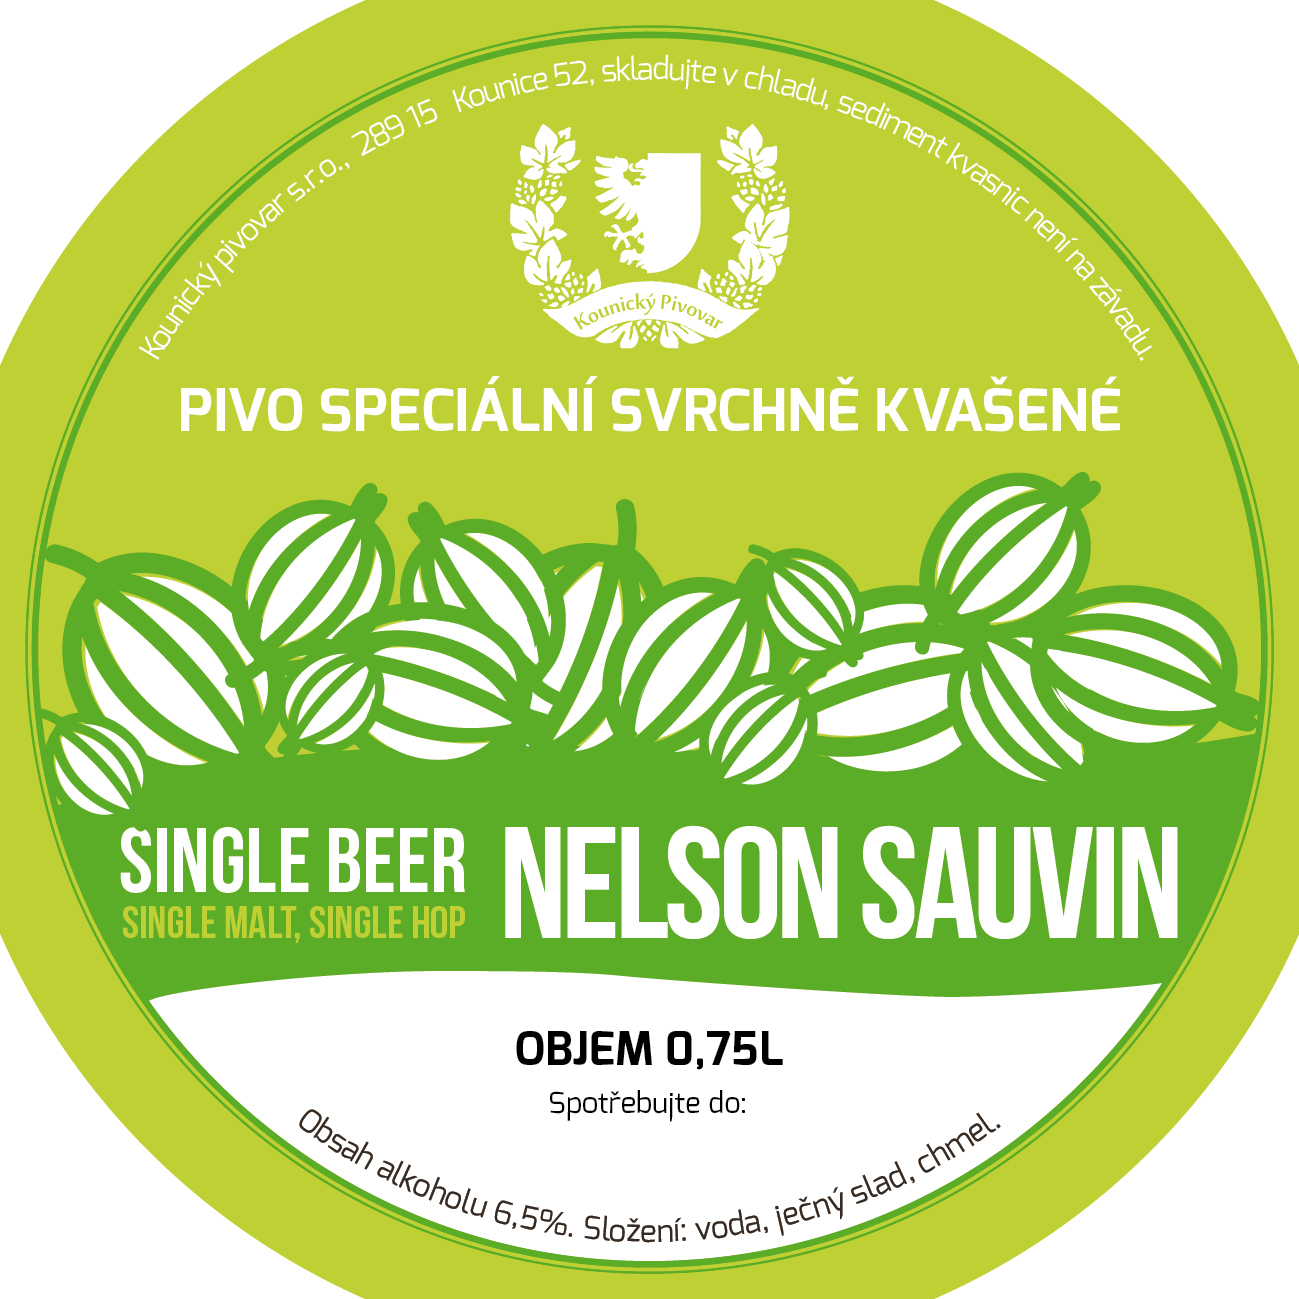 Nelson Sauvin 15 - Pale Ale, single hop, single malt